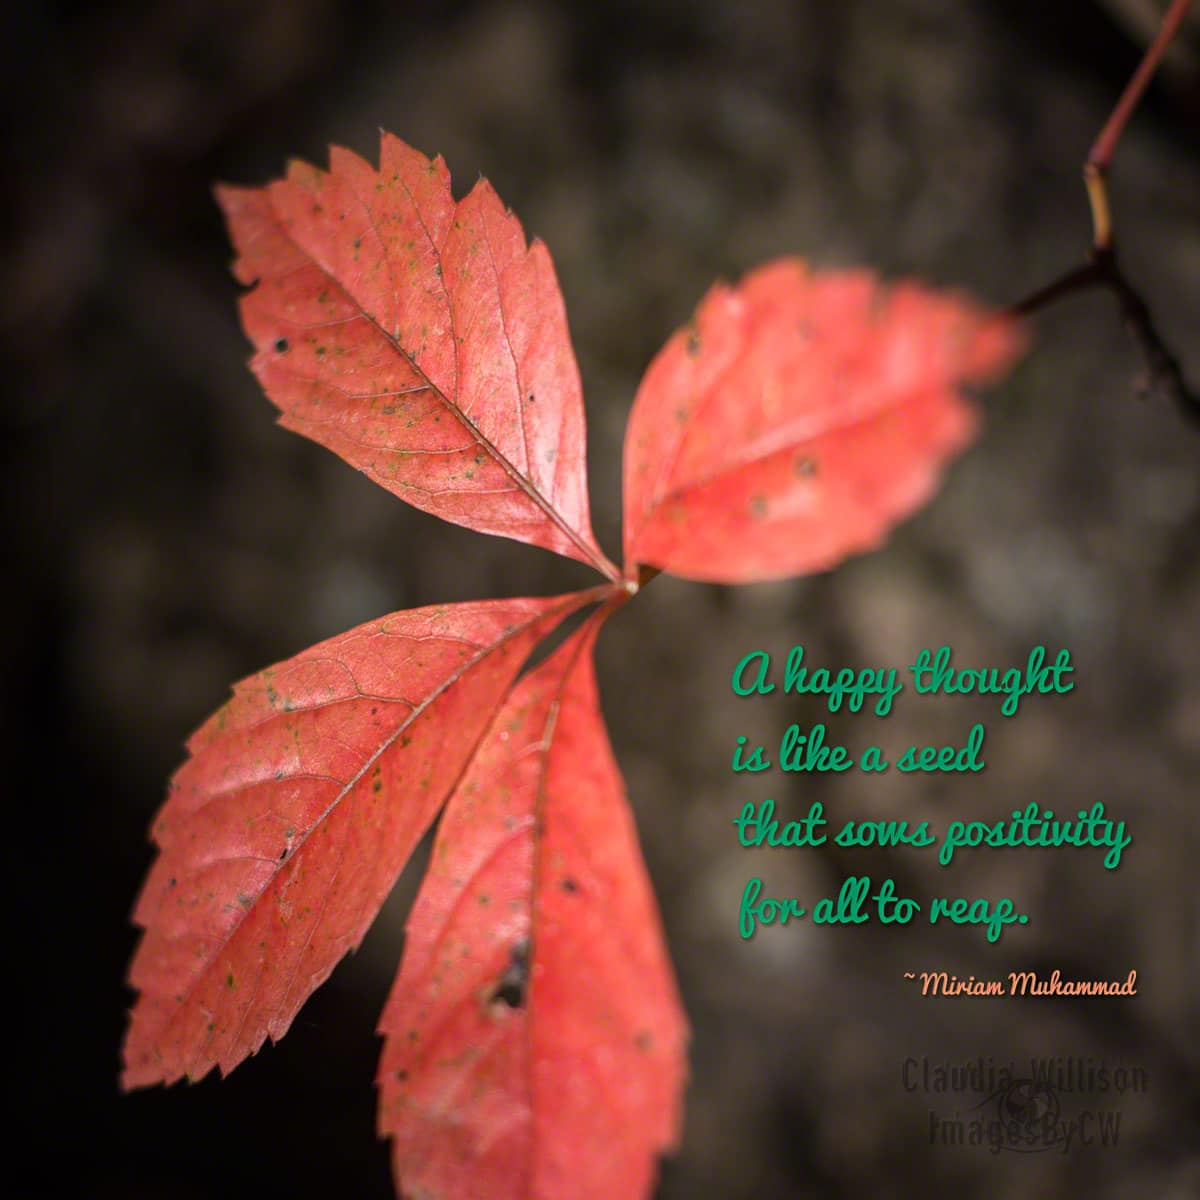 leaf, red, positive, quote